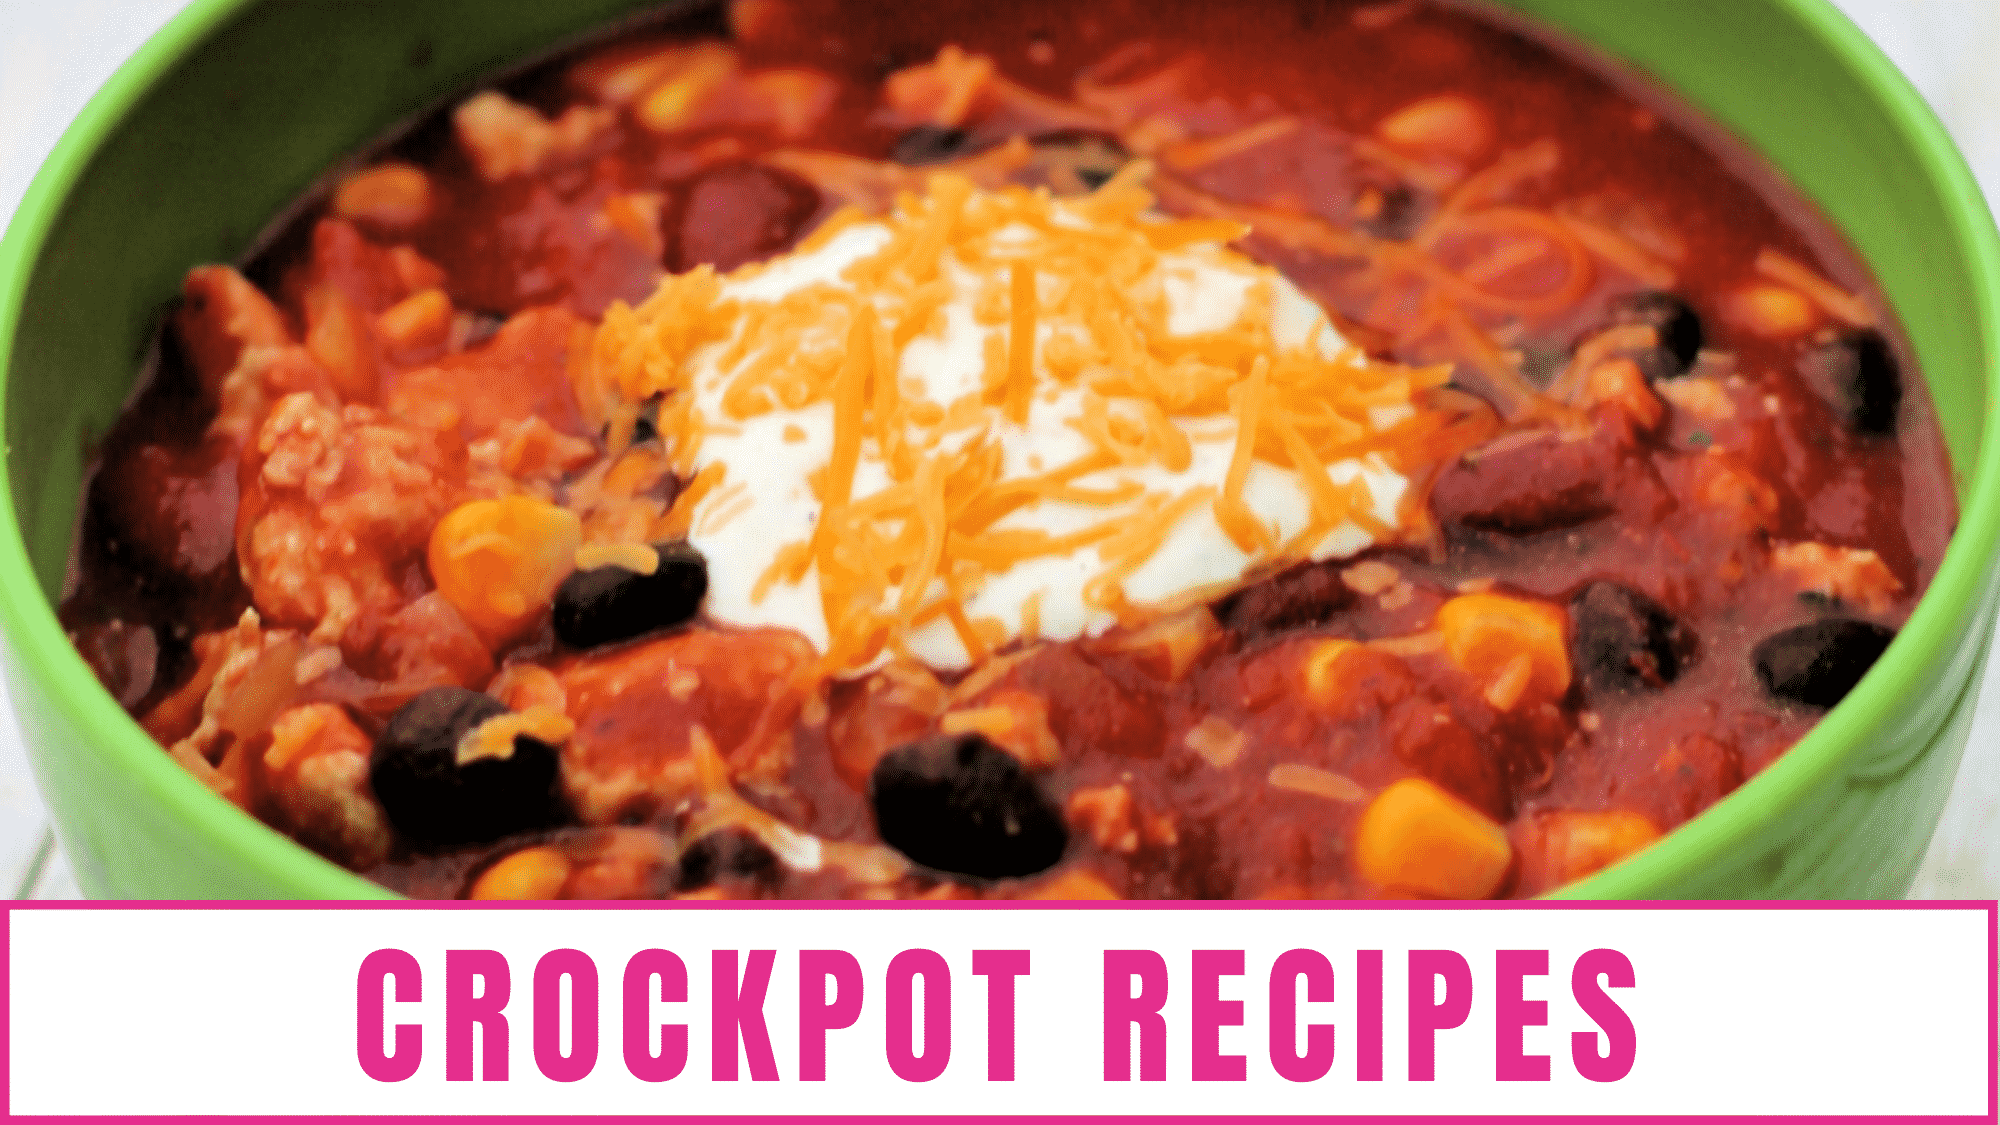 The crockpot is my secret weapon for whipping up cheap meals for big families that are also easy and fairly hands-off.